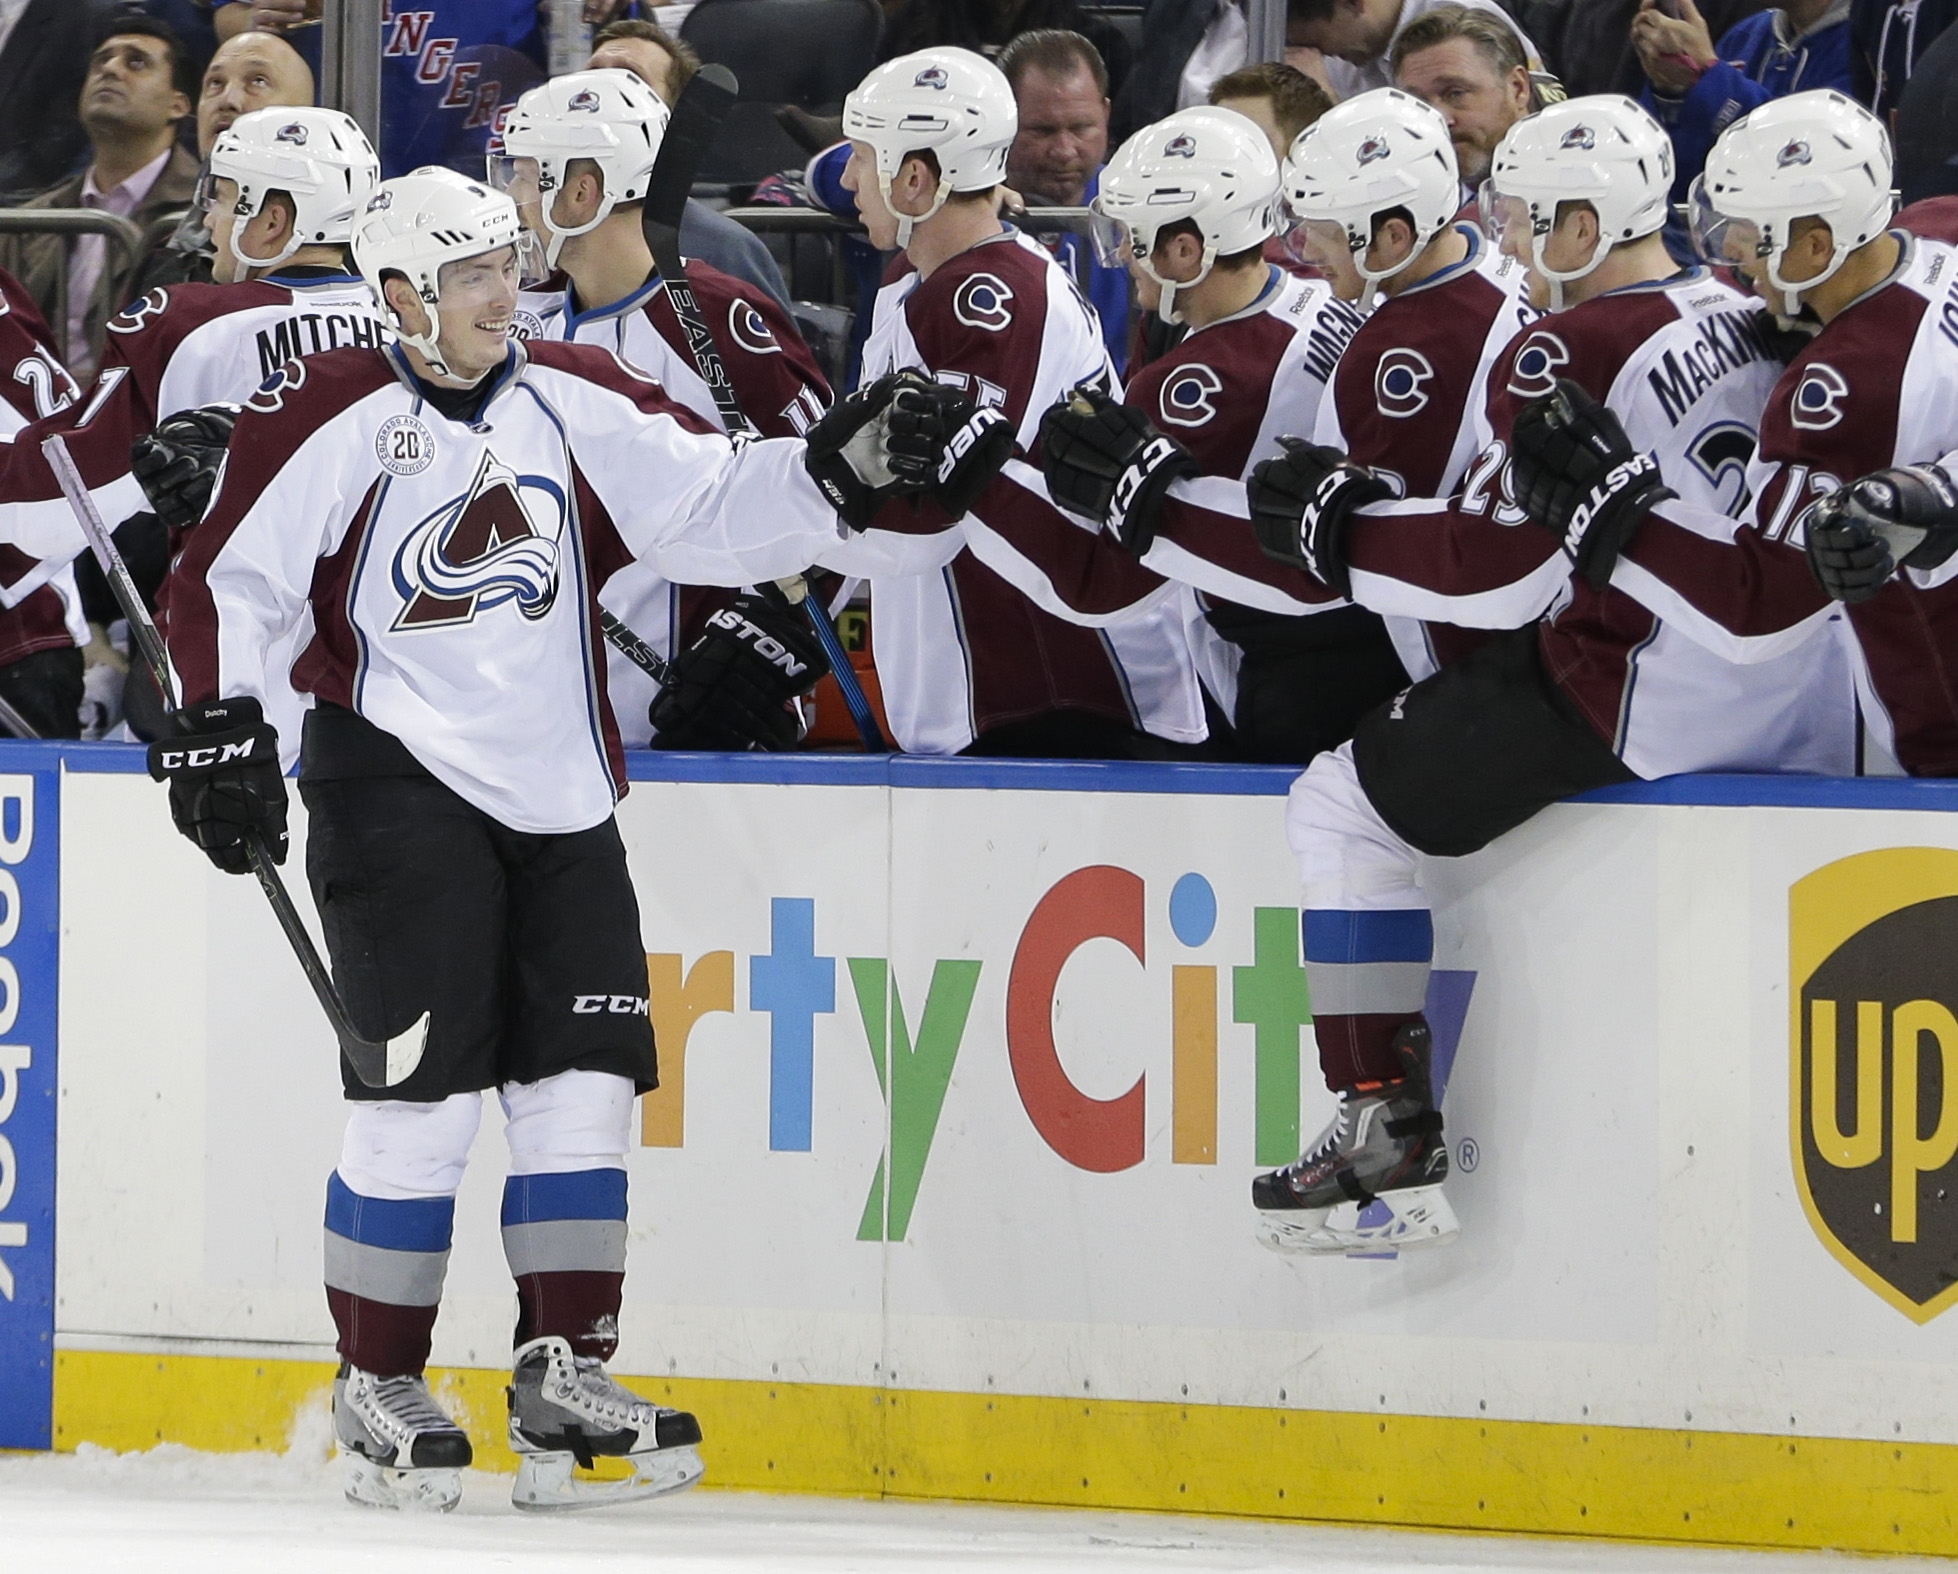 Colorado Avalanche's Matt Duchene (9) celebrates with teammates after scoring a goal during the second period of an NHL hockey game against the New York Rangers Thursday, Dec. 3, 2015, in New York. (AP Photo/Frank Franklin II)